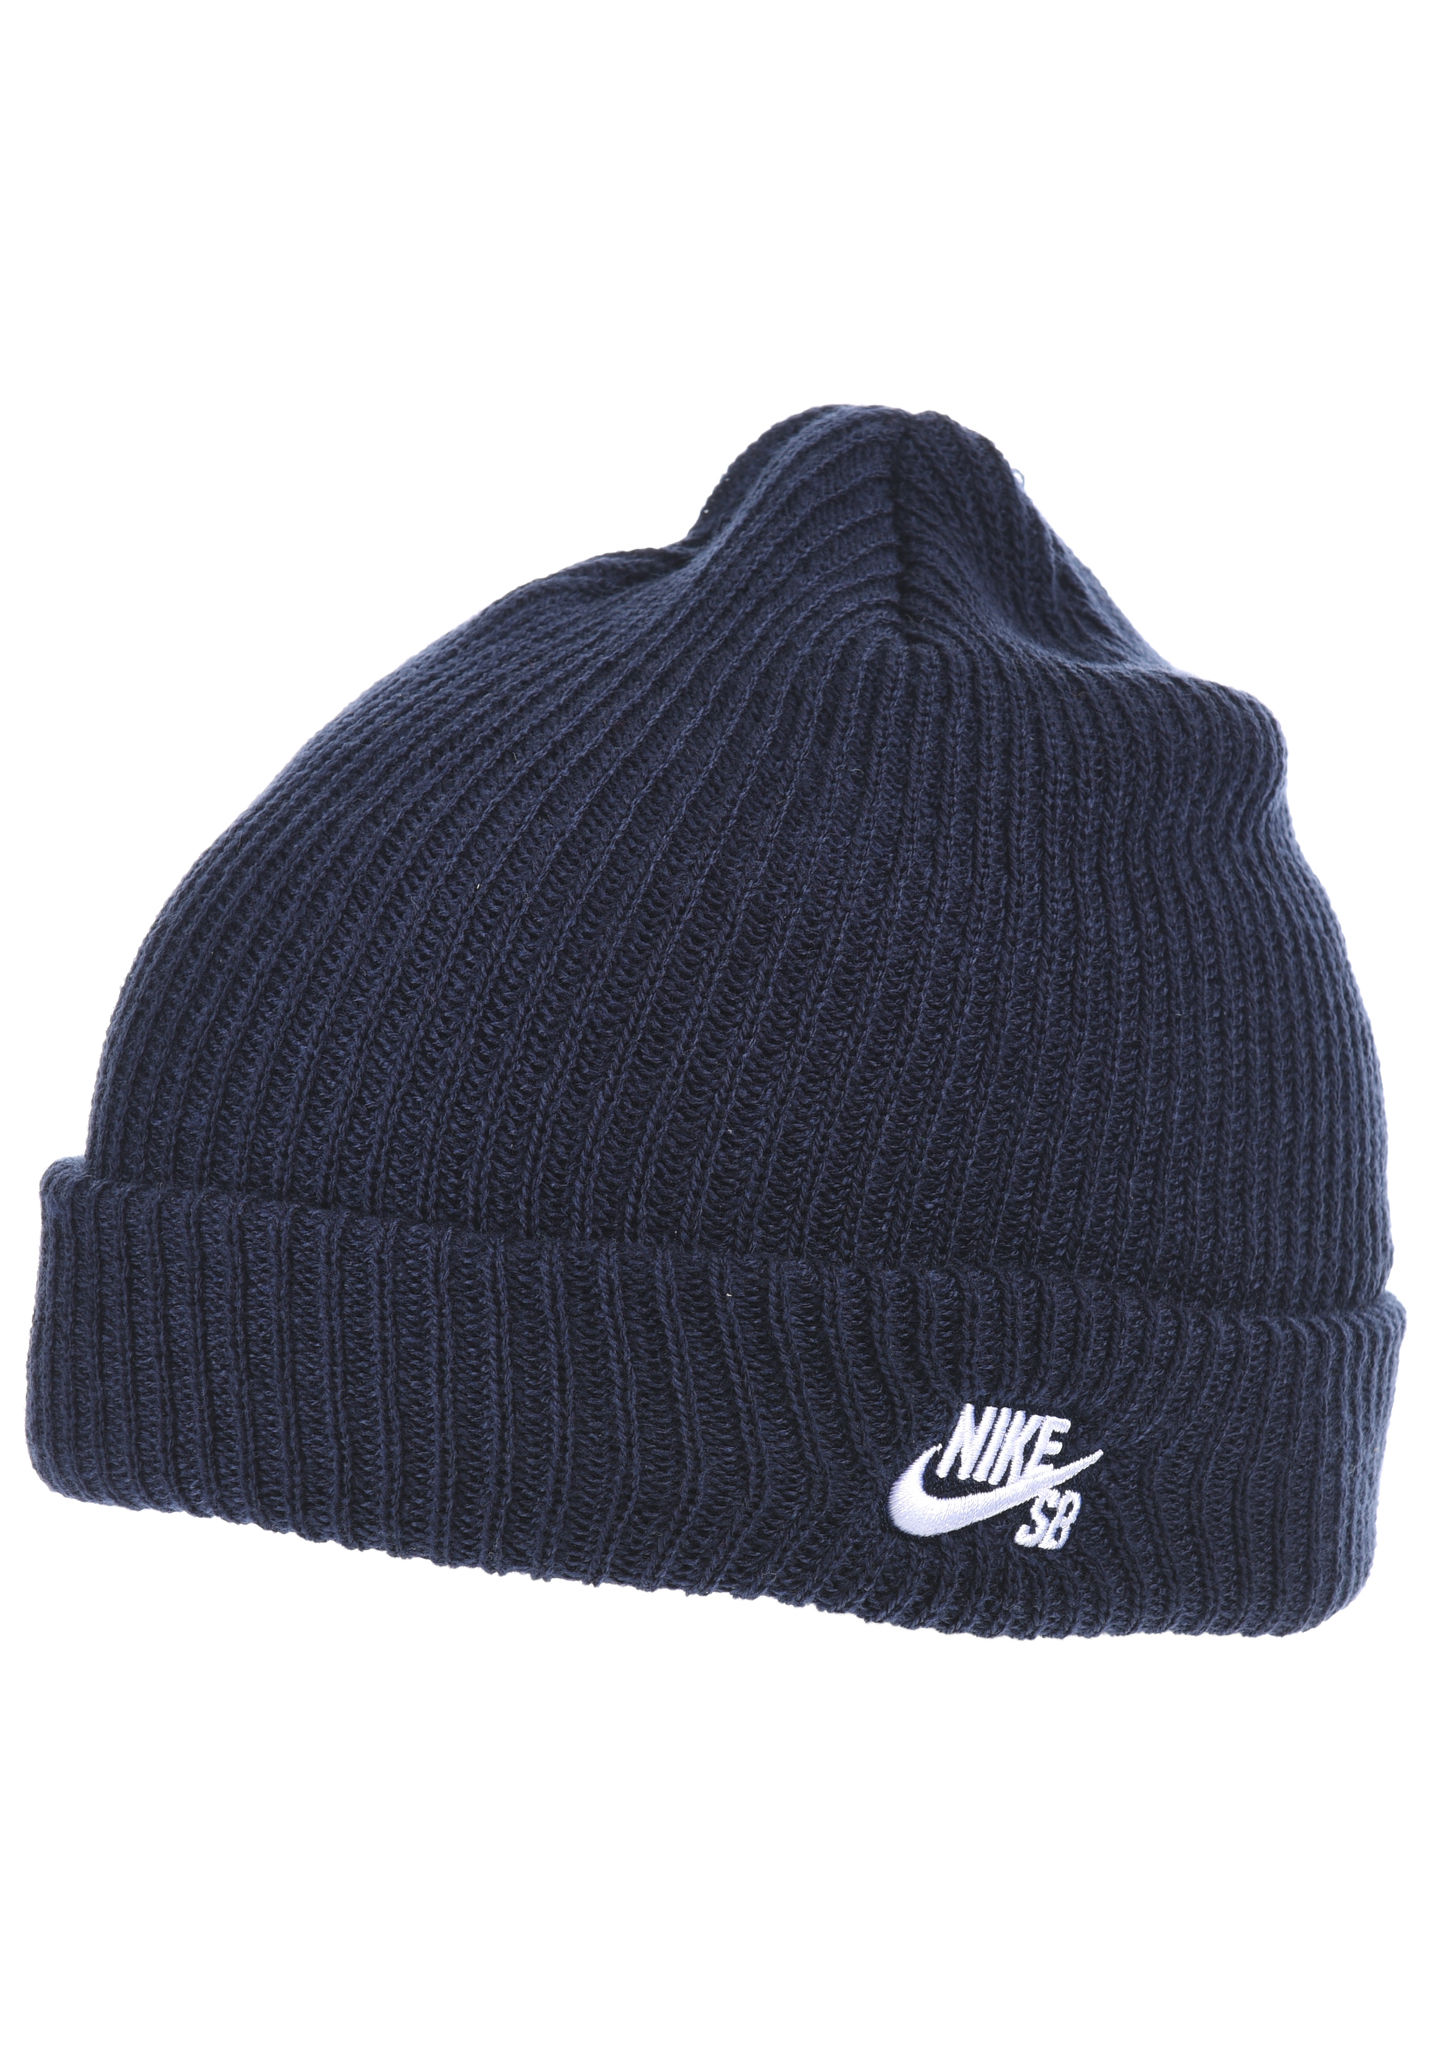 NIKE SB Fisherman - Beanie - Blue - Planet Sports e790f8ae630